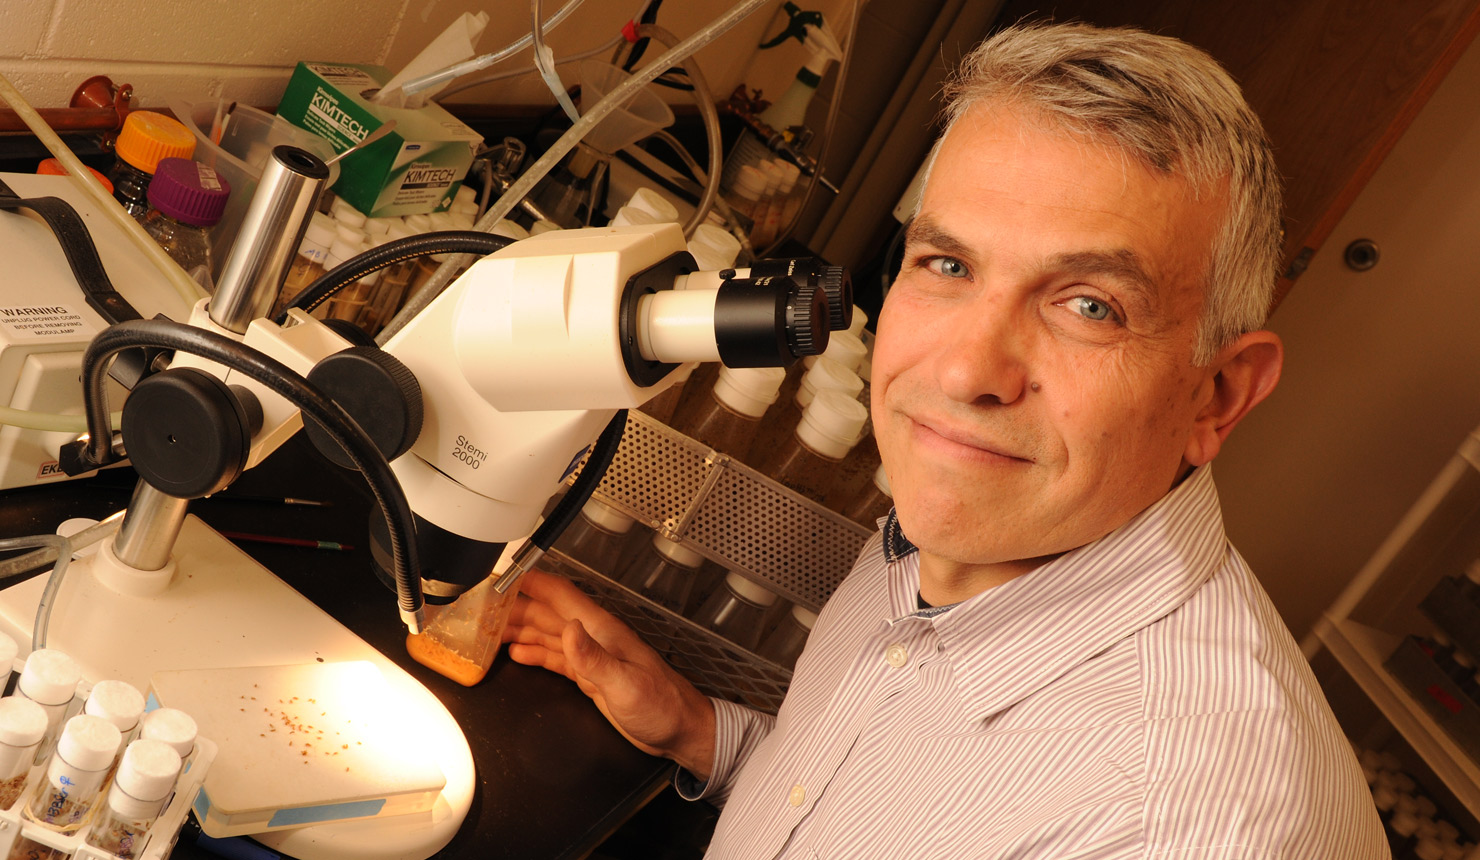 Giovanni Bosco, PhD, is studying fruit flies to help discover the precise molecules and neuronal networks that connect the mind to the body. (photo by Jon Gilbert Fox)